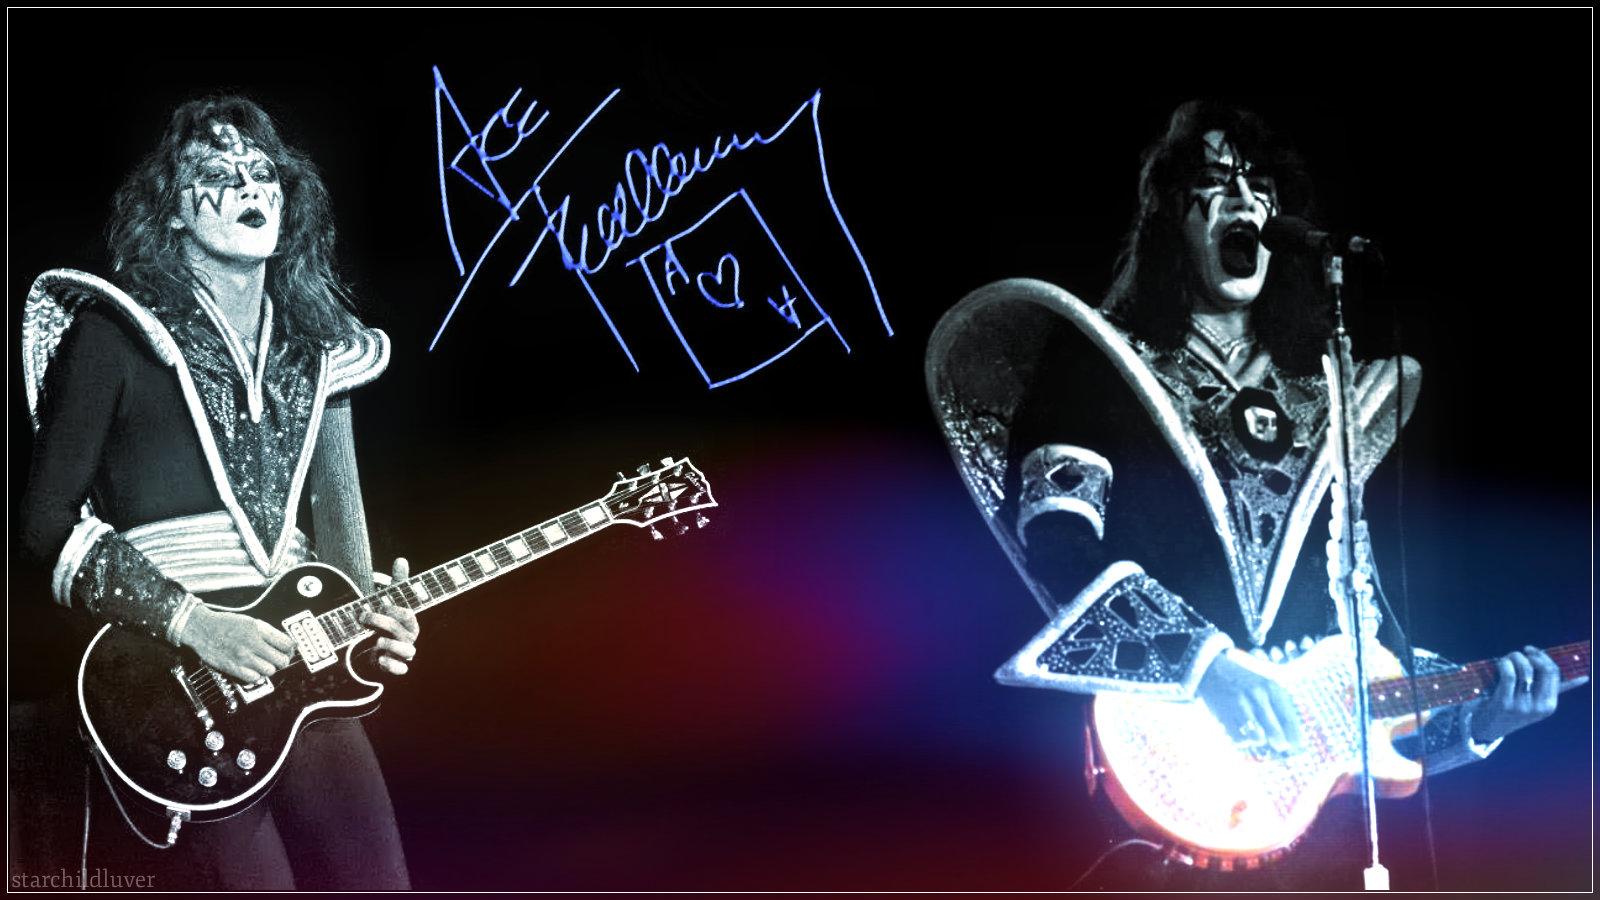 Ace Frehley - Ace Frehley Wallpaper (38423778) - Fanpop